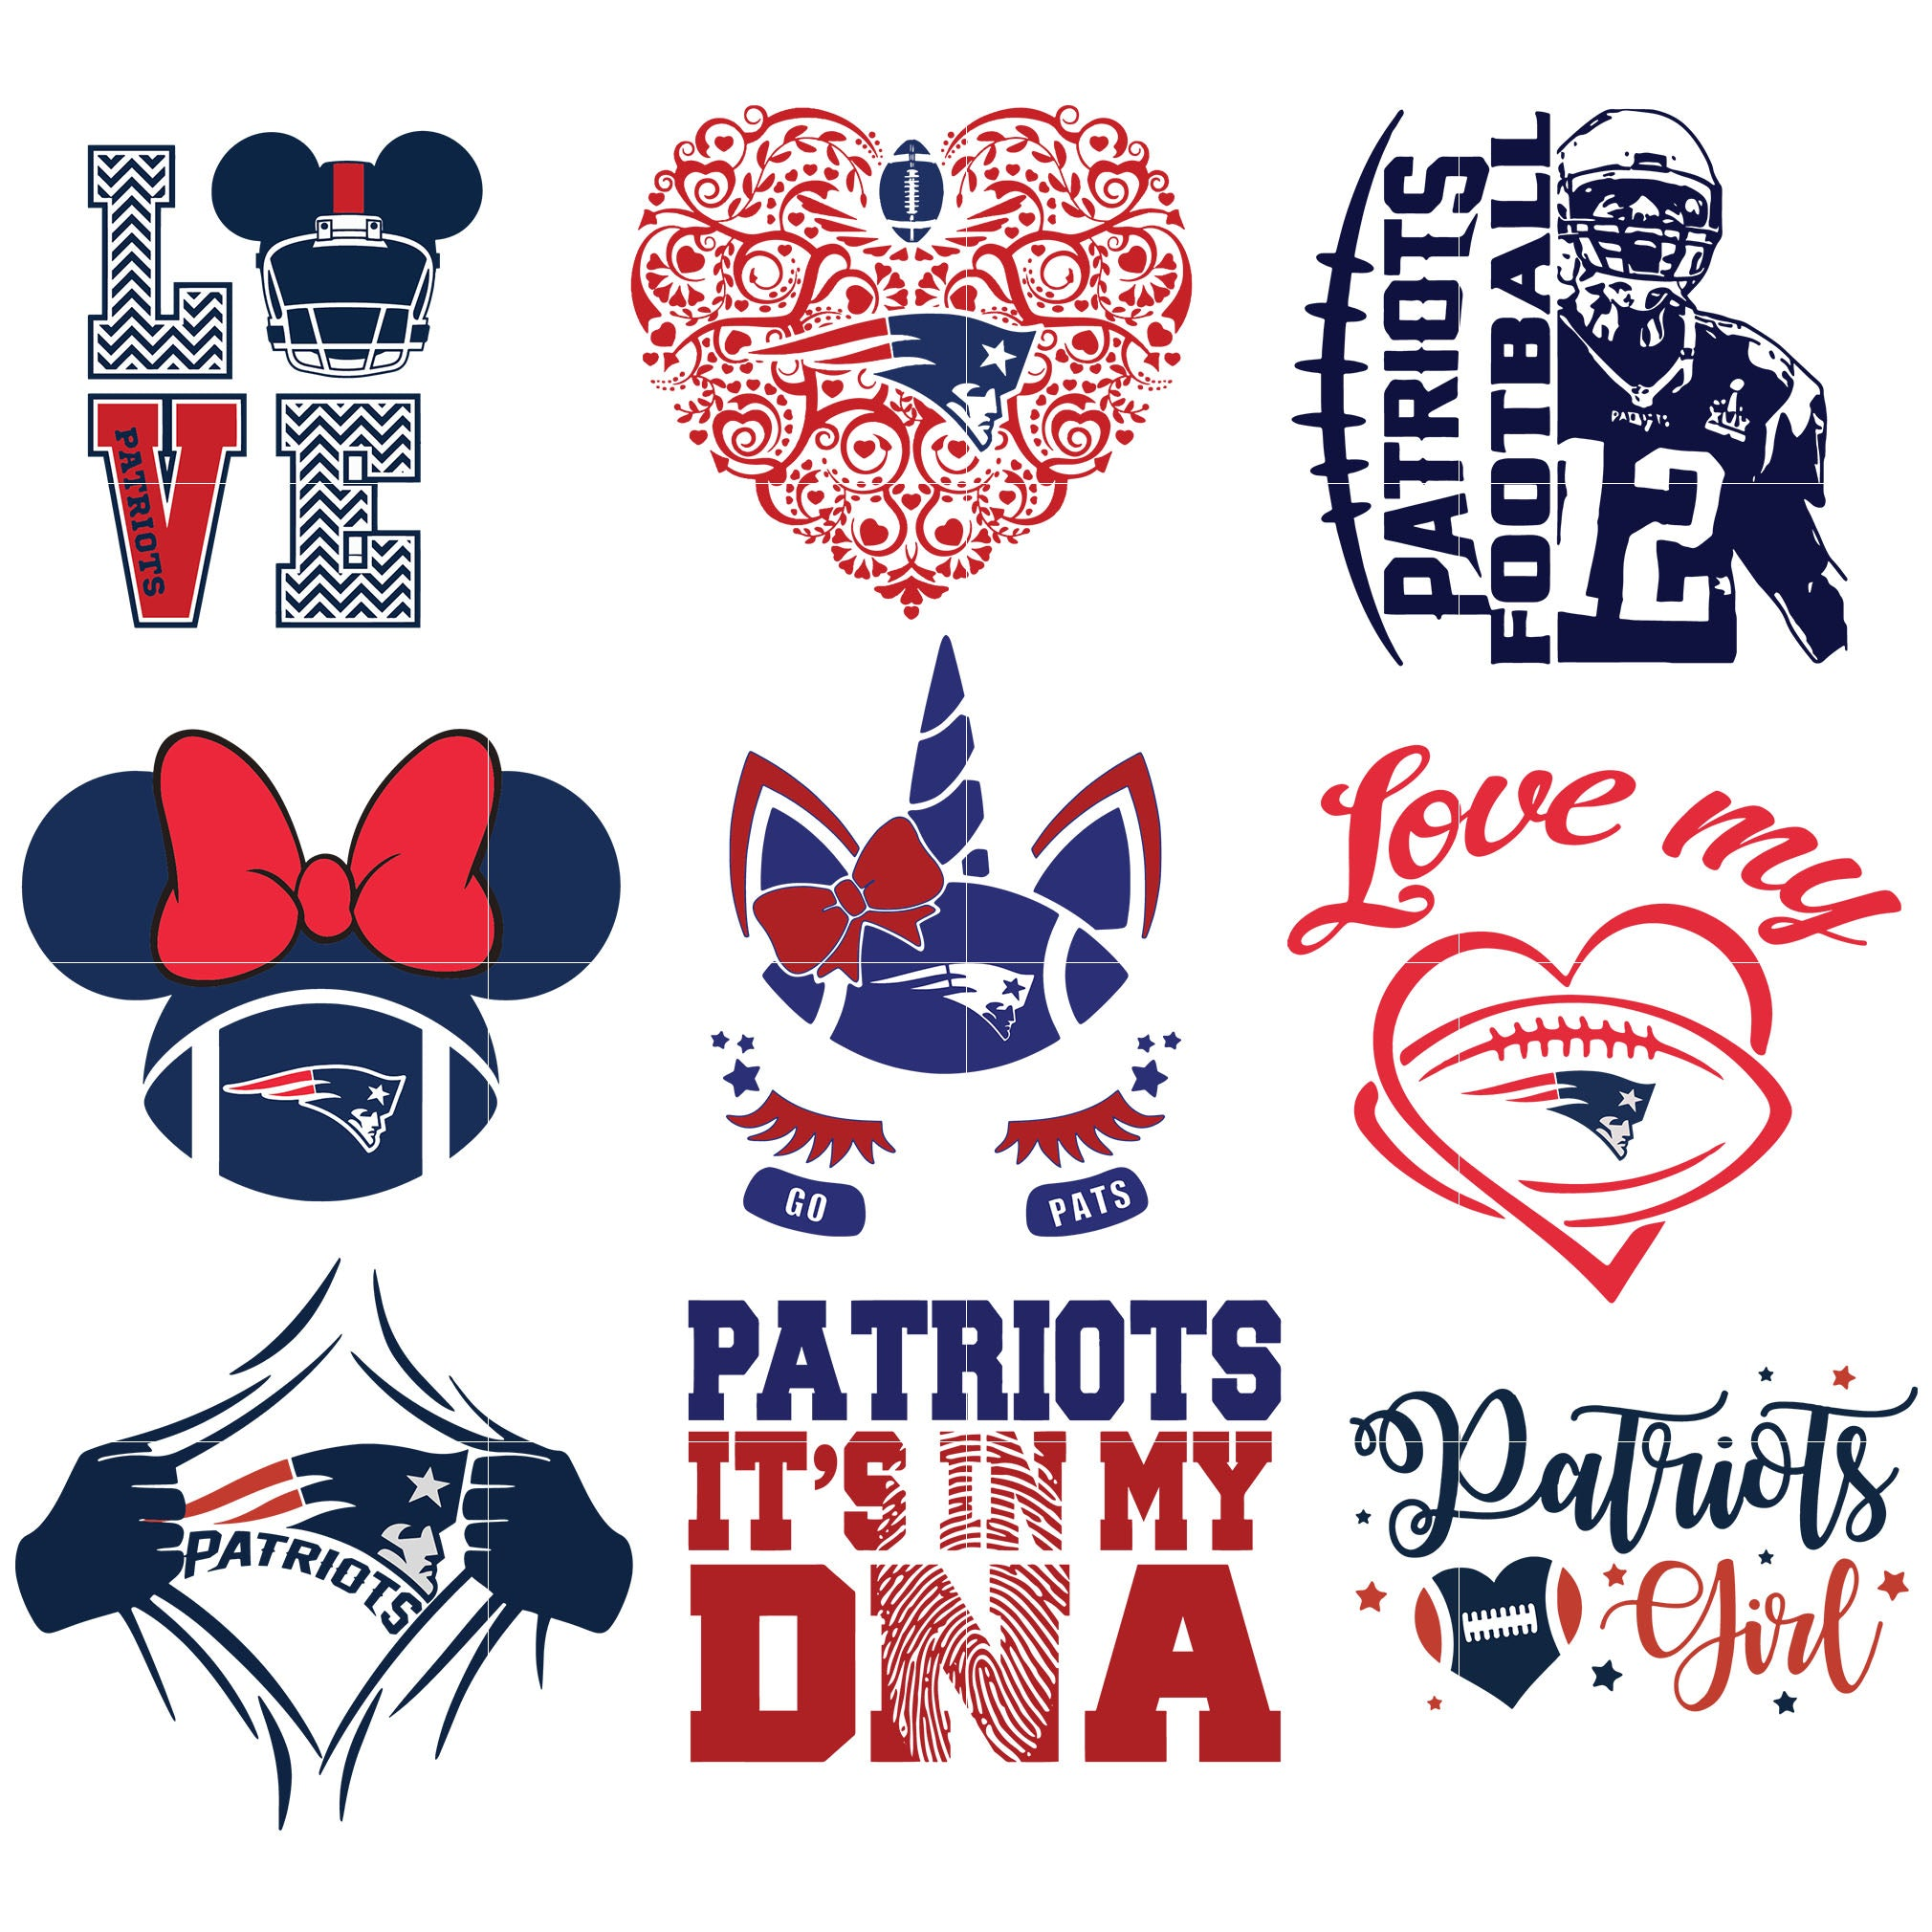 New England Patriots SVG, New England Patriots files, patriots logo, football, silhouette cameo, cricut, digital clipart, layers, png dxf ai